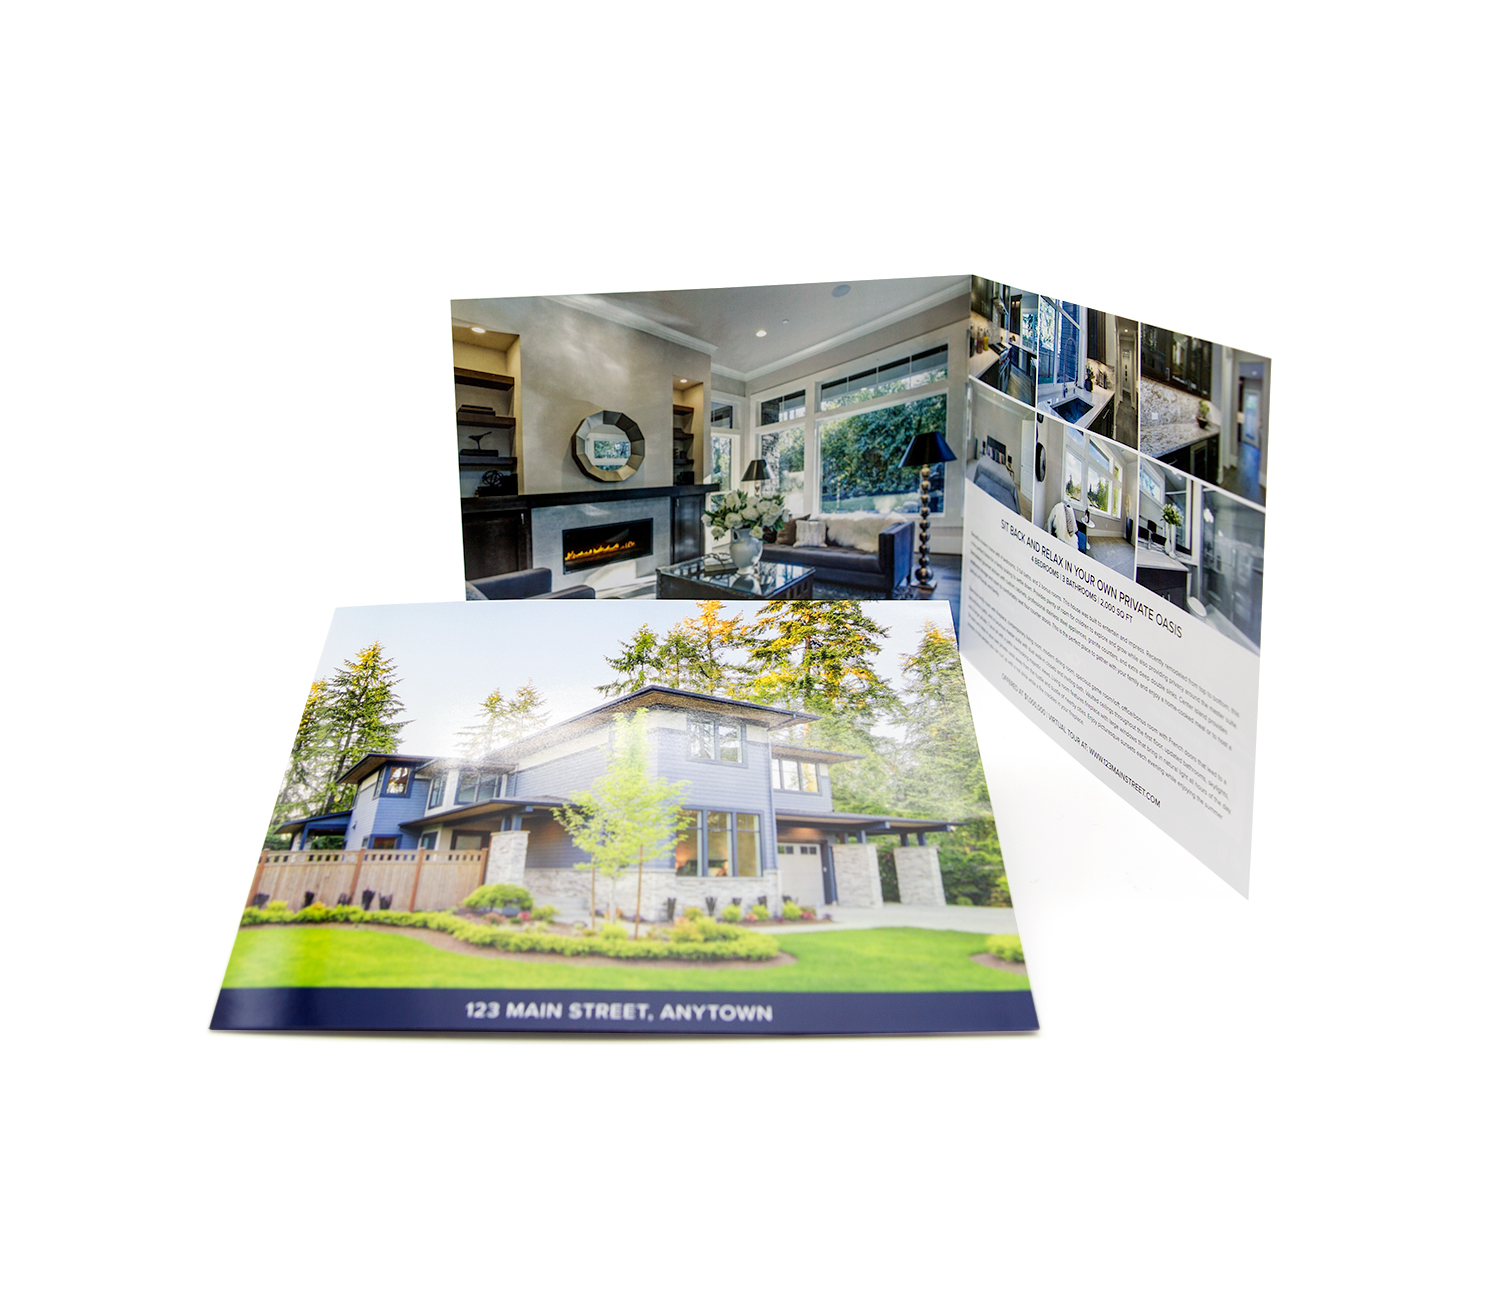 Four-sided 8x8 brochure